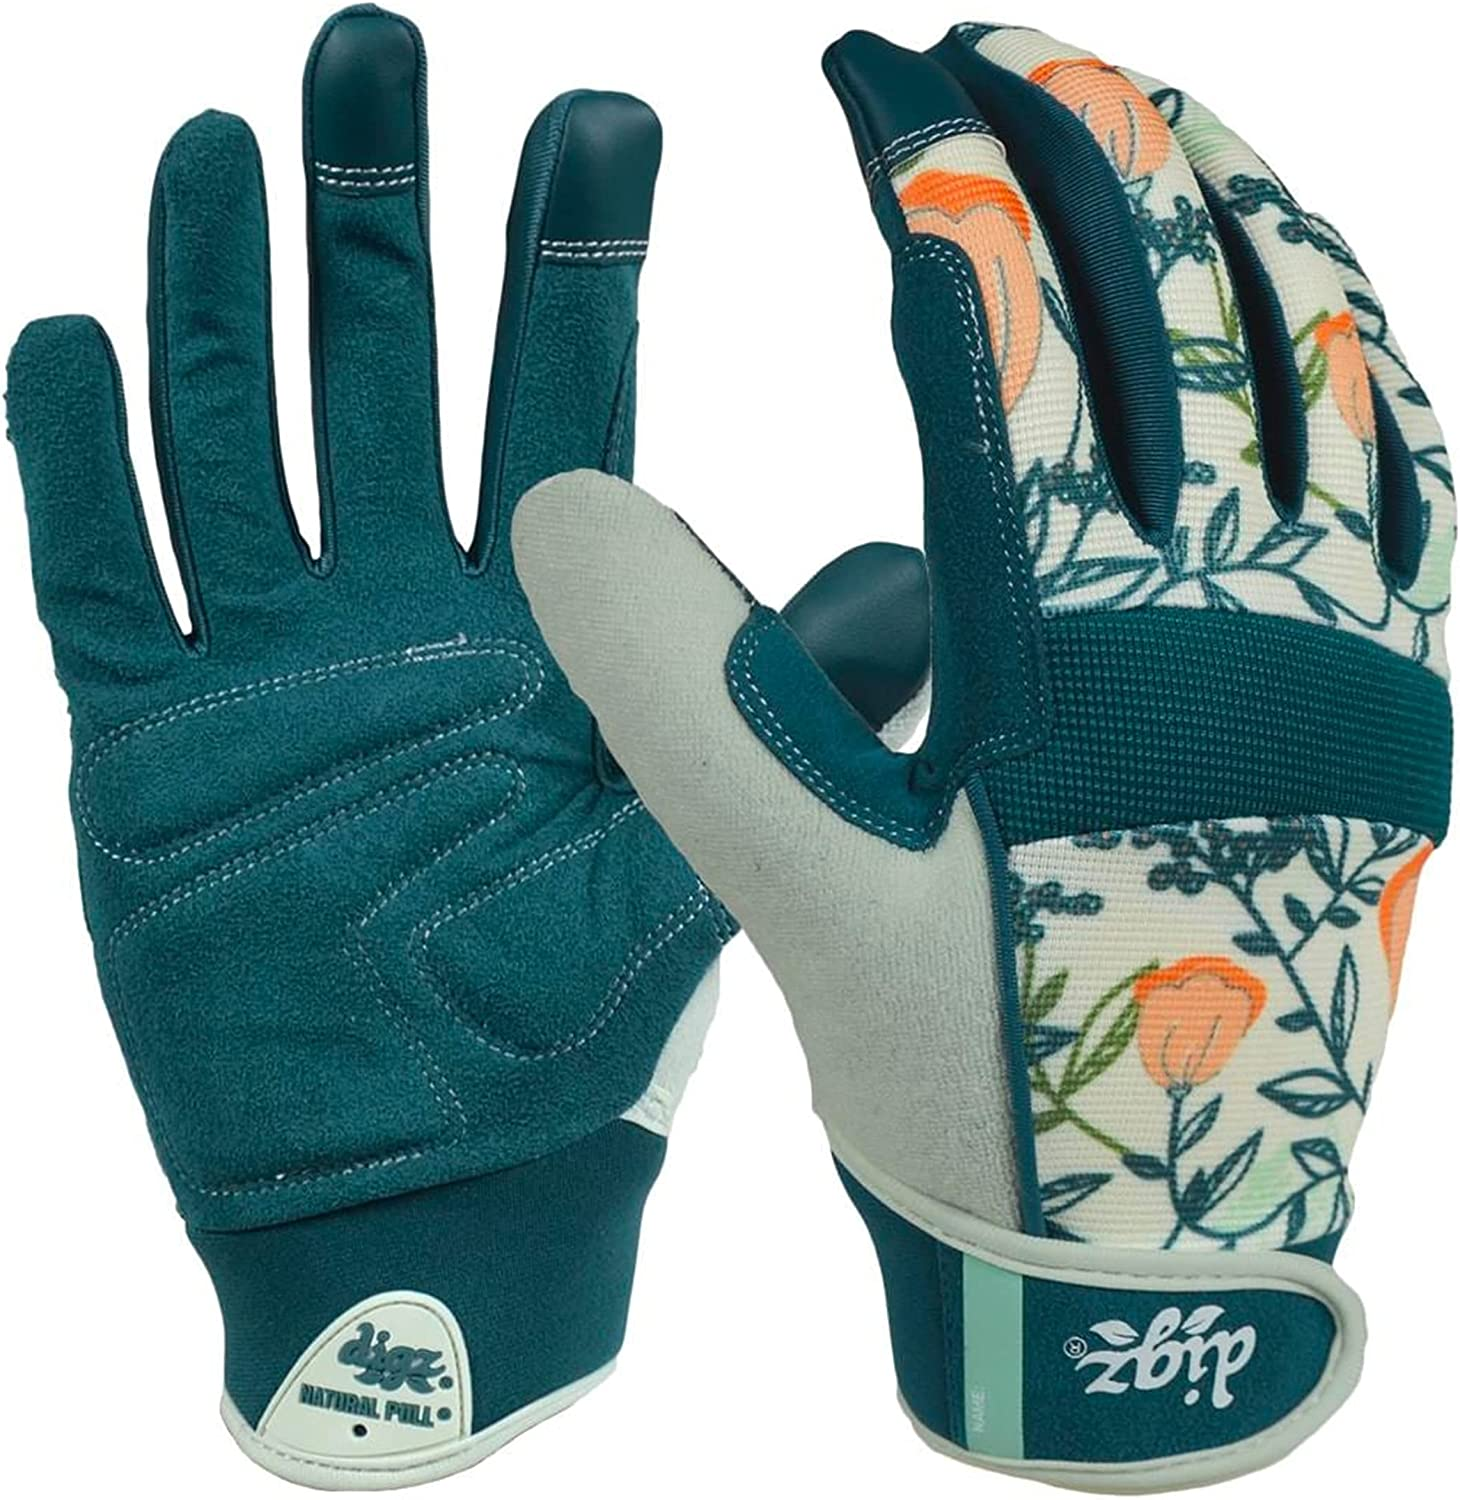 DIGZ 77862-23 High Performance Women's Gardening Work Touch Screen Compatible Fingertips Gloves, Large, Coral Floral Pattern